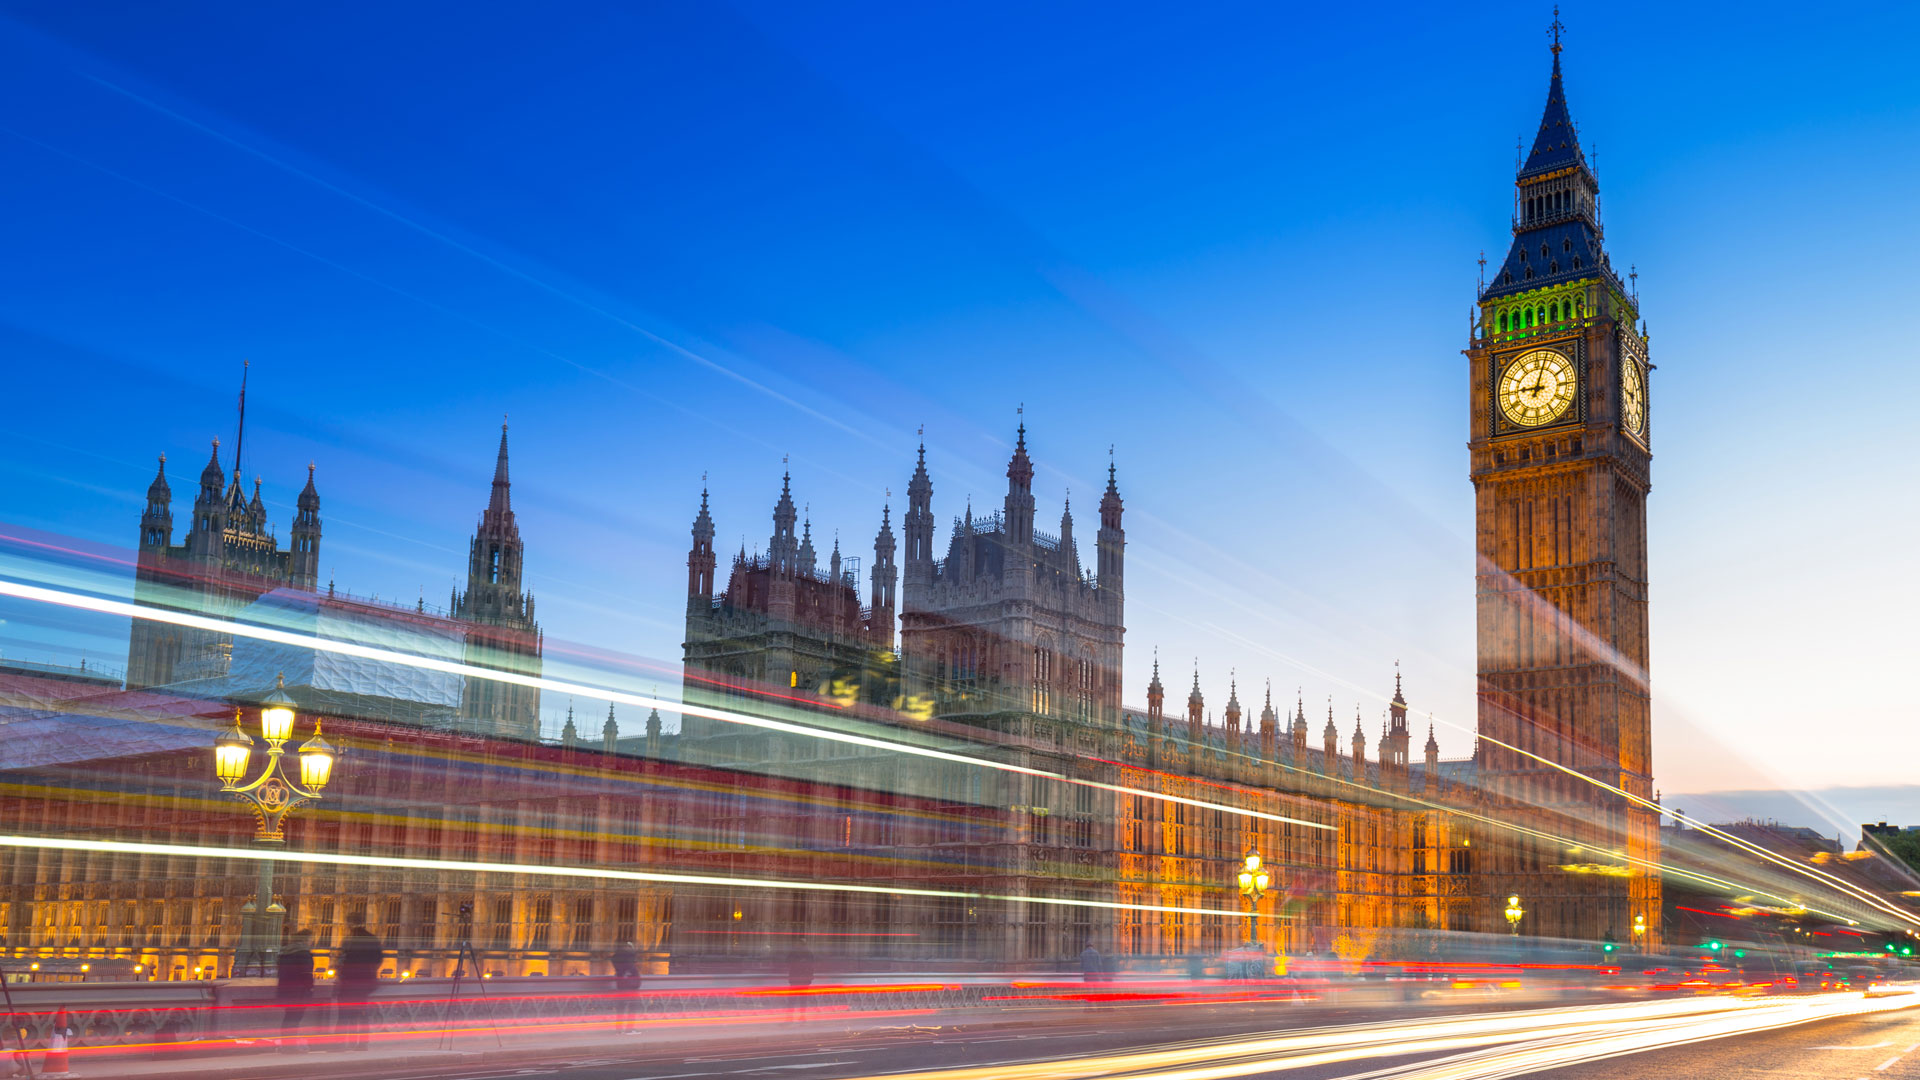 If your business is appearing before a Parliamentary Select Committee, regulator or public body, either virtually or physically, we can help prepare and coach your spokespeople to be effective communicators.